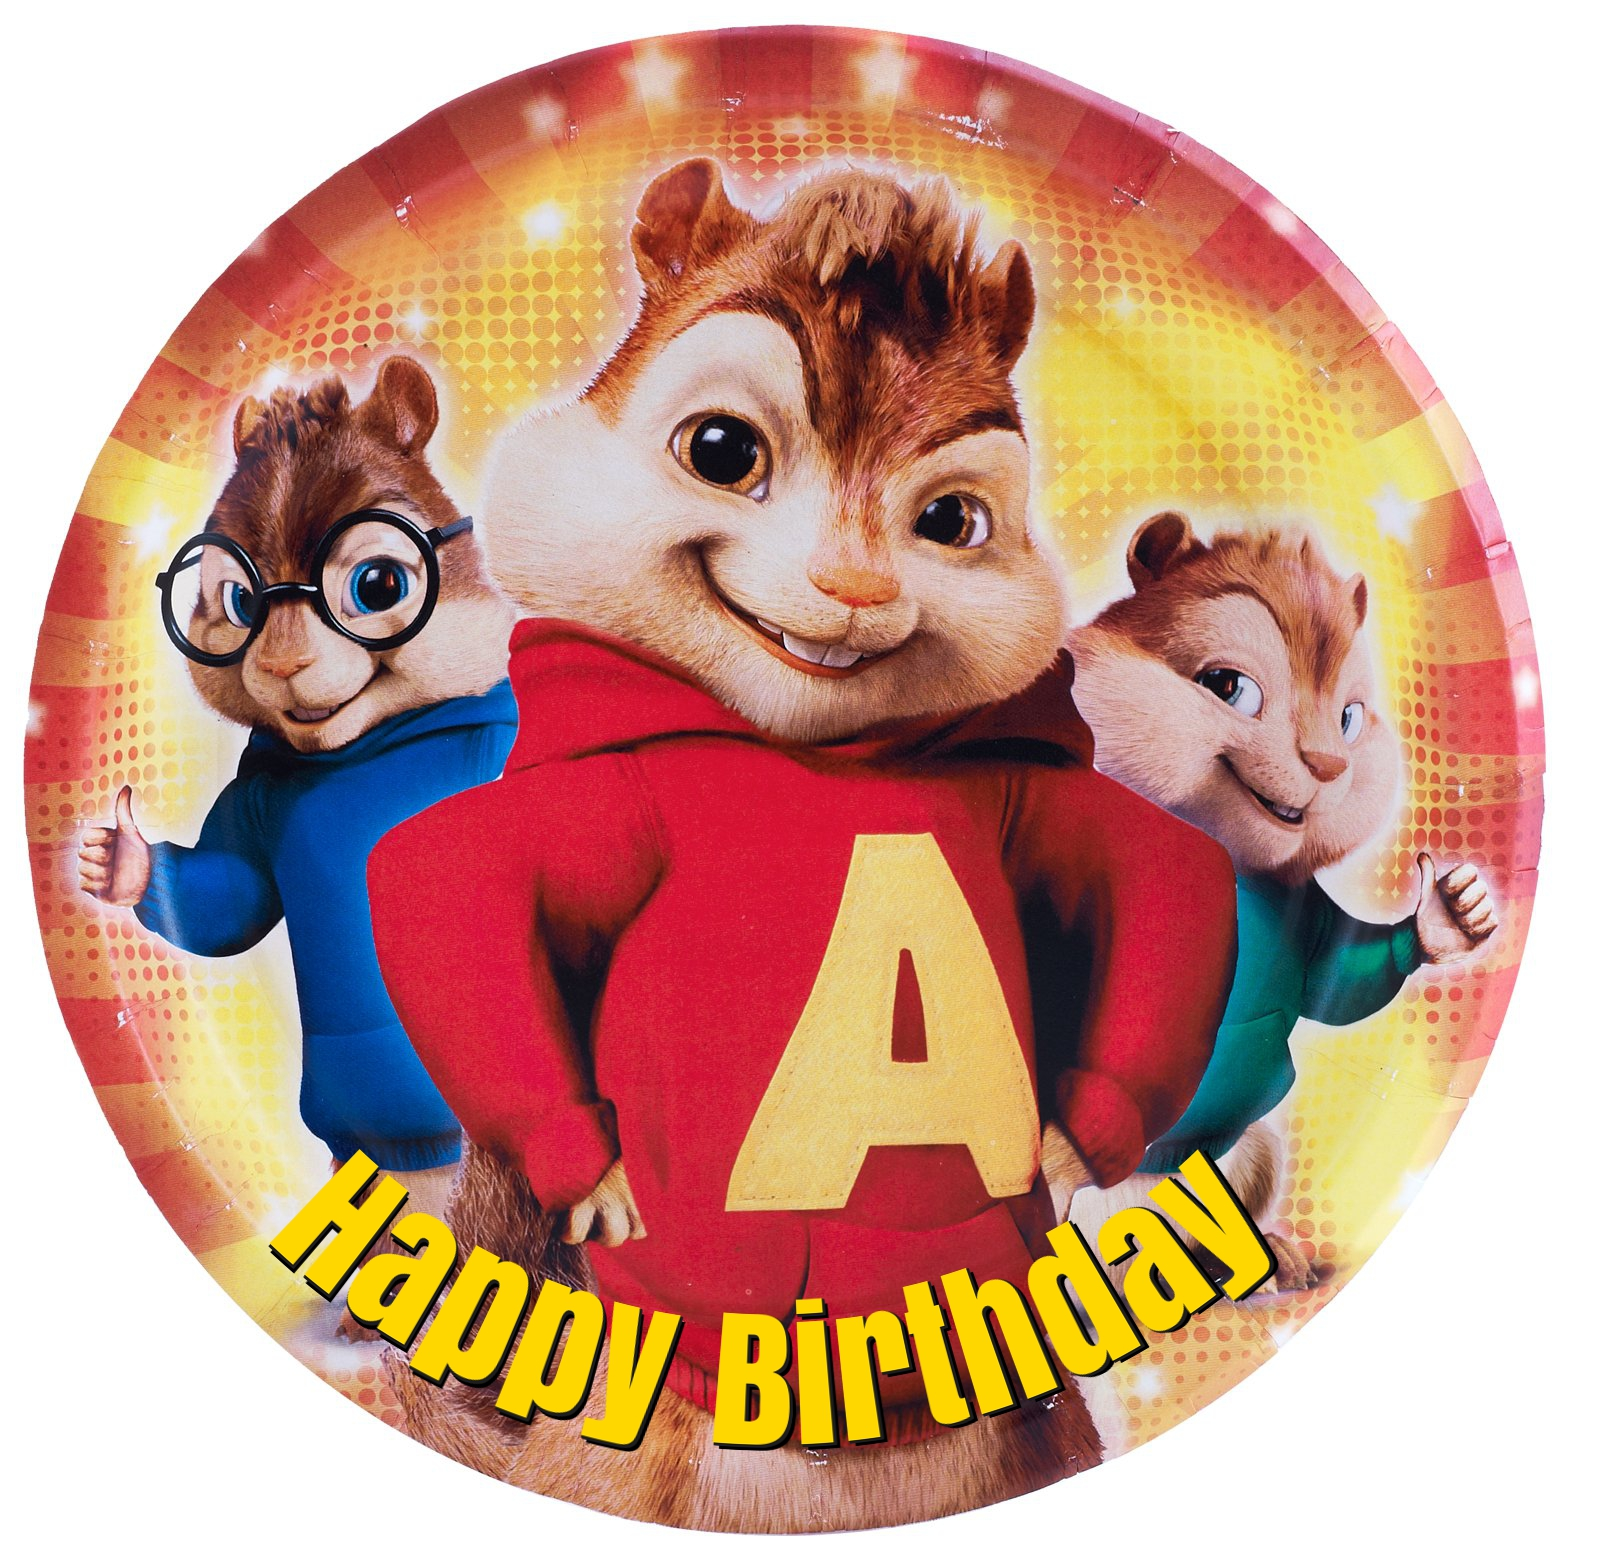 alvin-and-the-chipmunks birthday